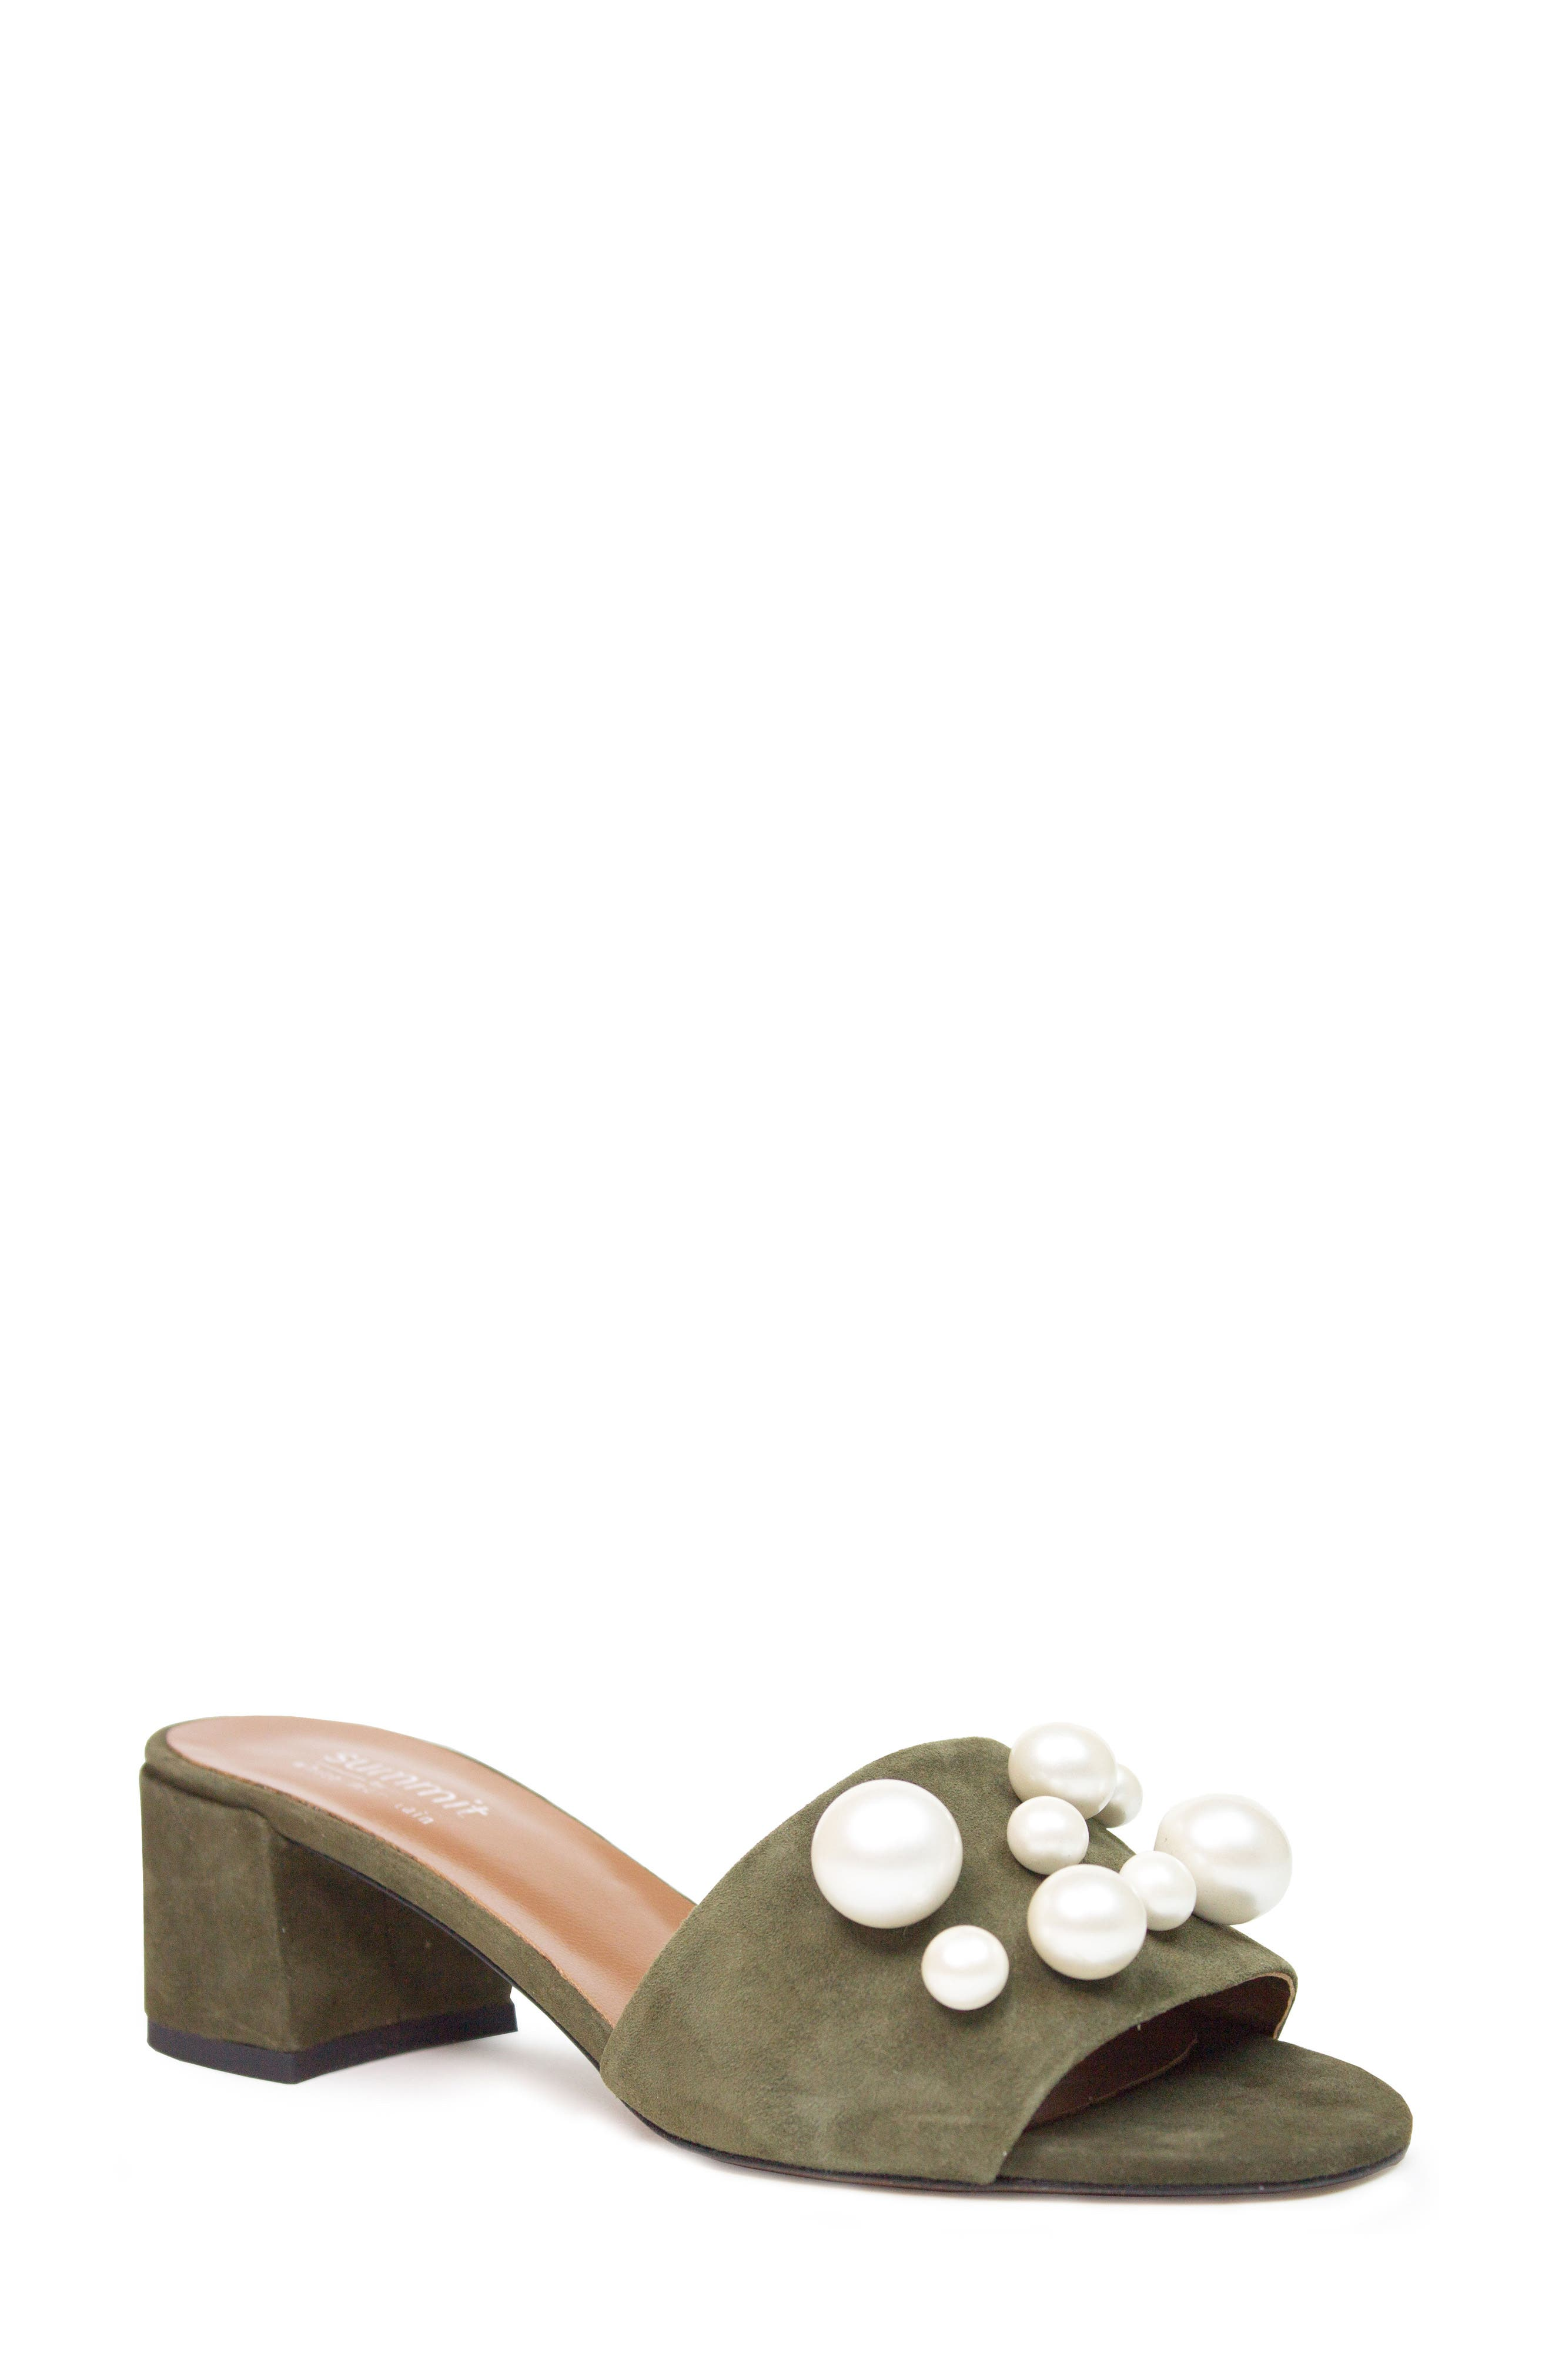 Ariella Beaded Slide Mule,                         Main,                         color, Olive Suede